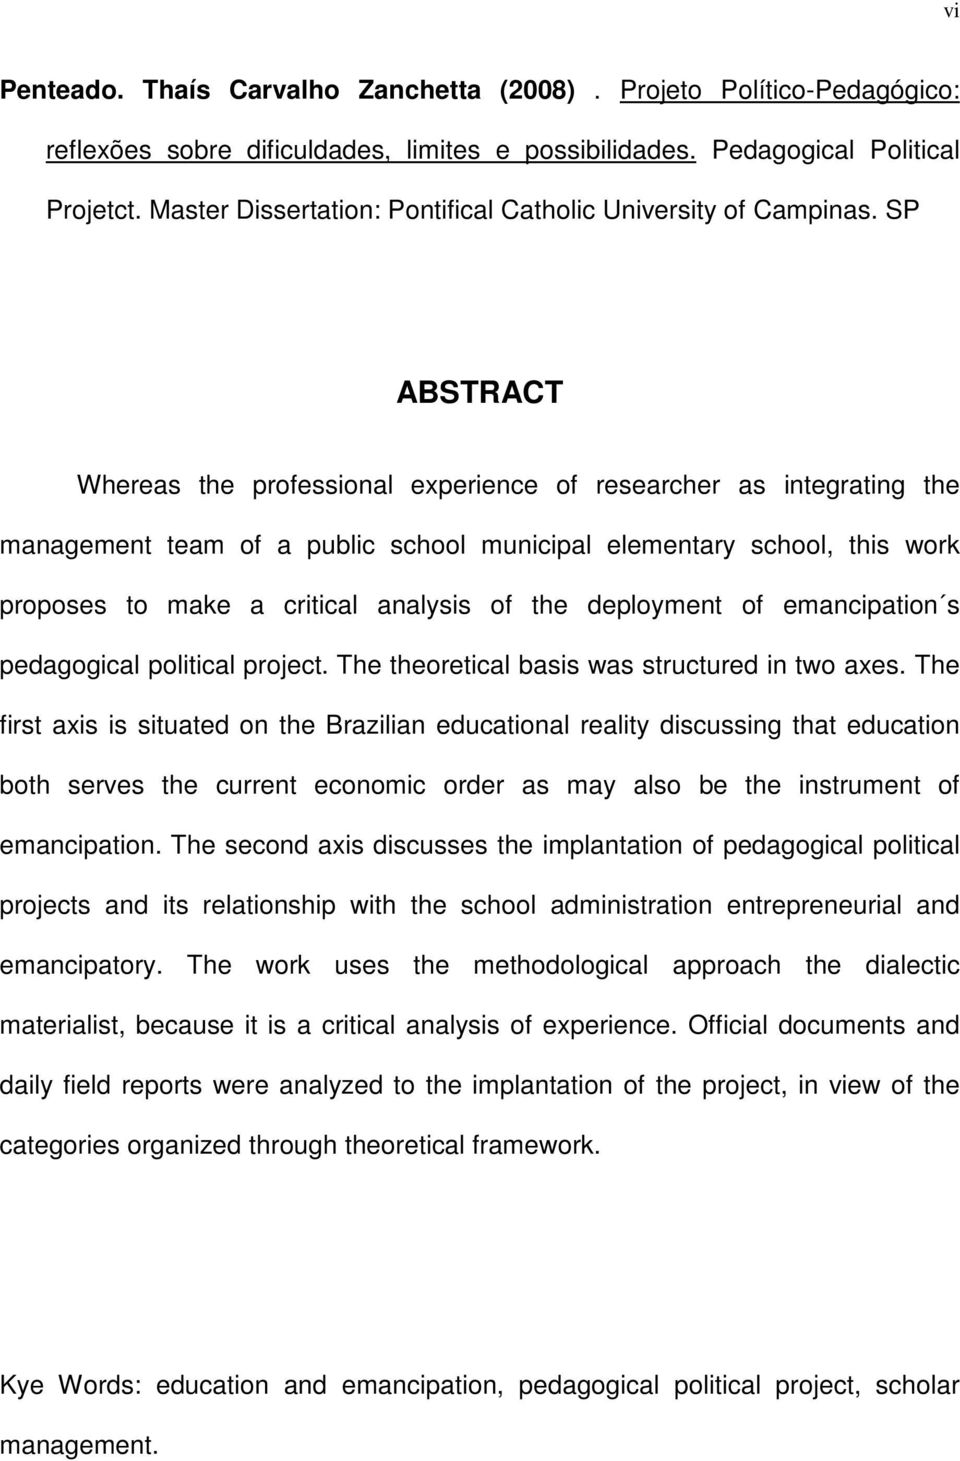 SP ABSTRACT Whereas the professional experience of researcher as integrating the management team of a public school municipal elementary school, this work proposes to make a critical analysis of the